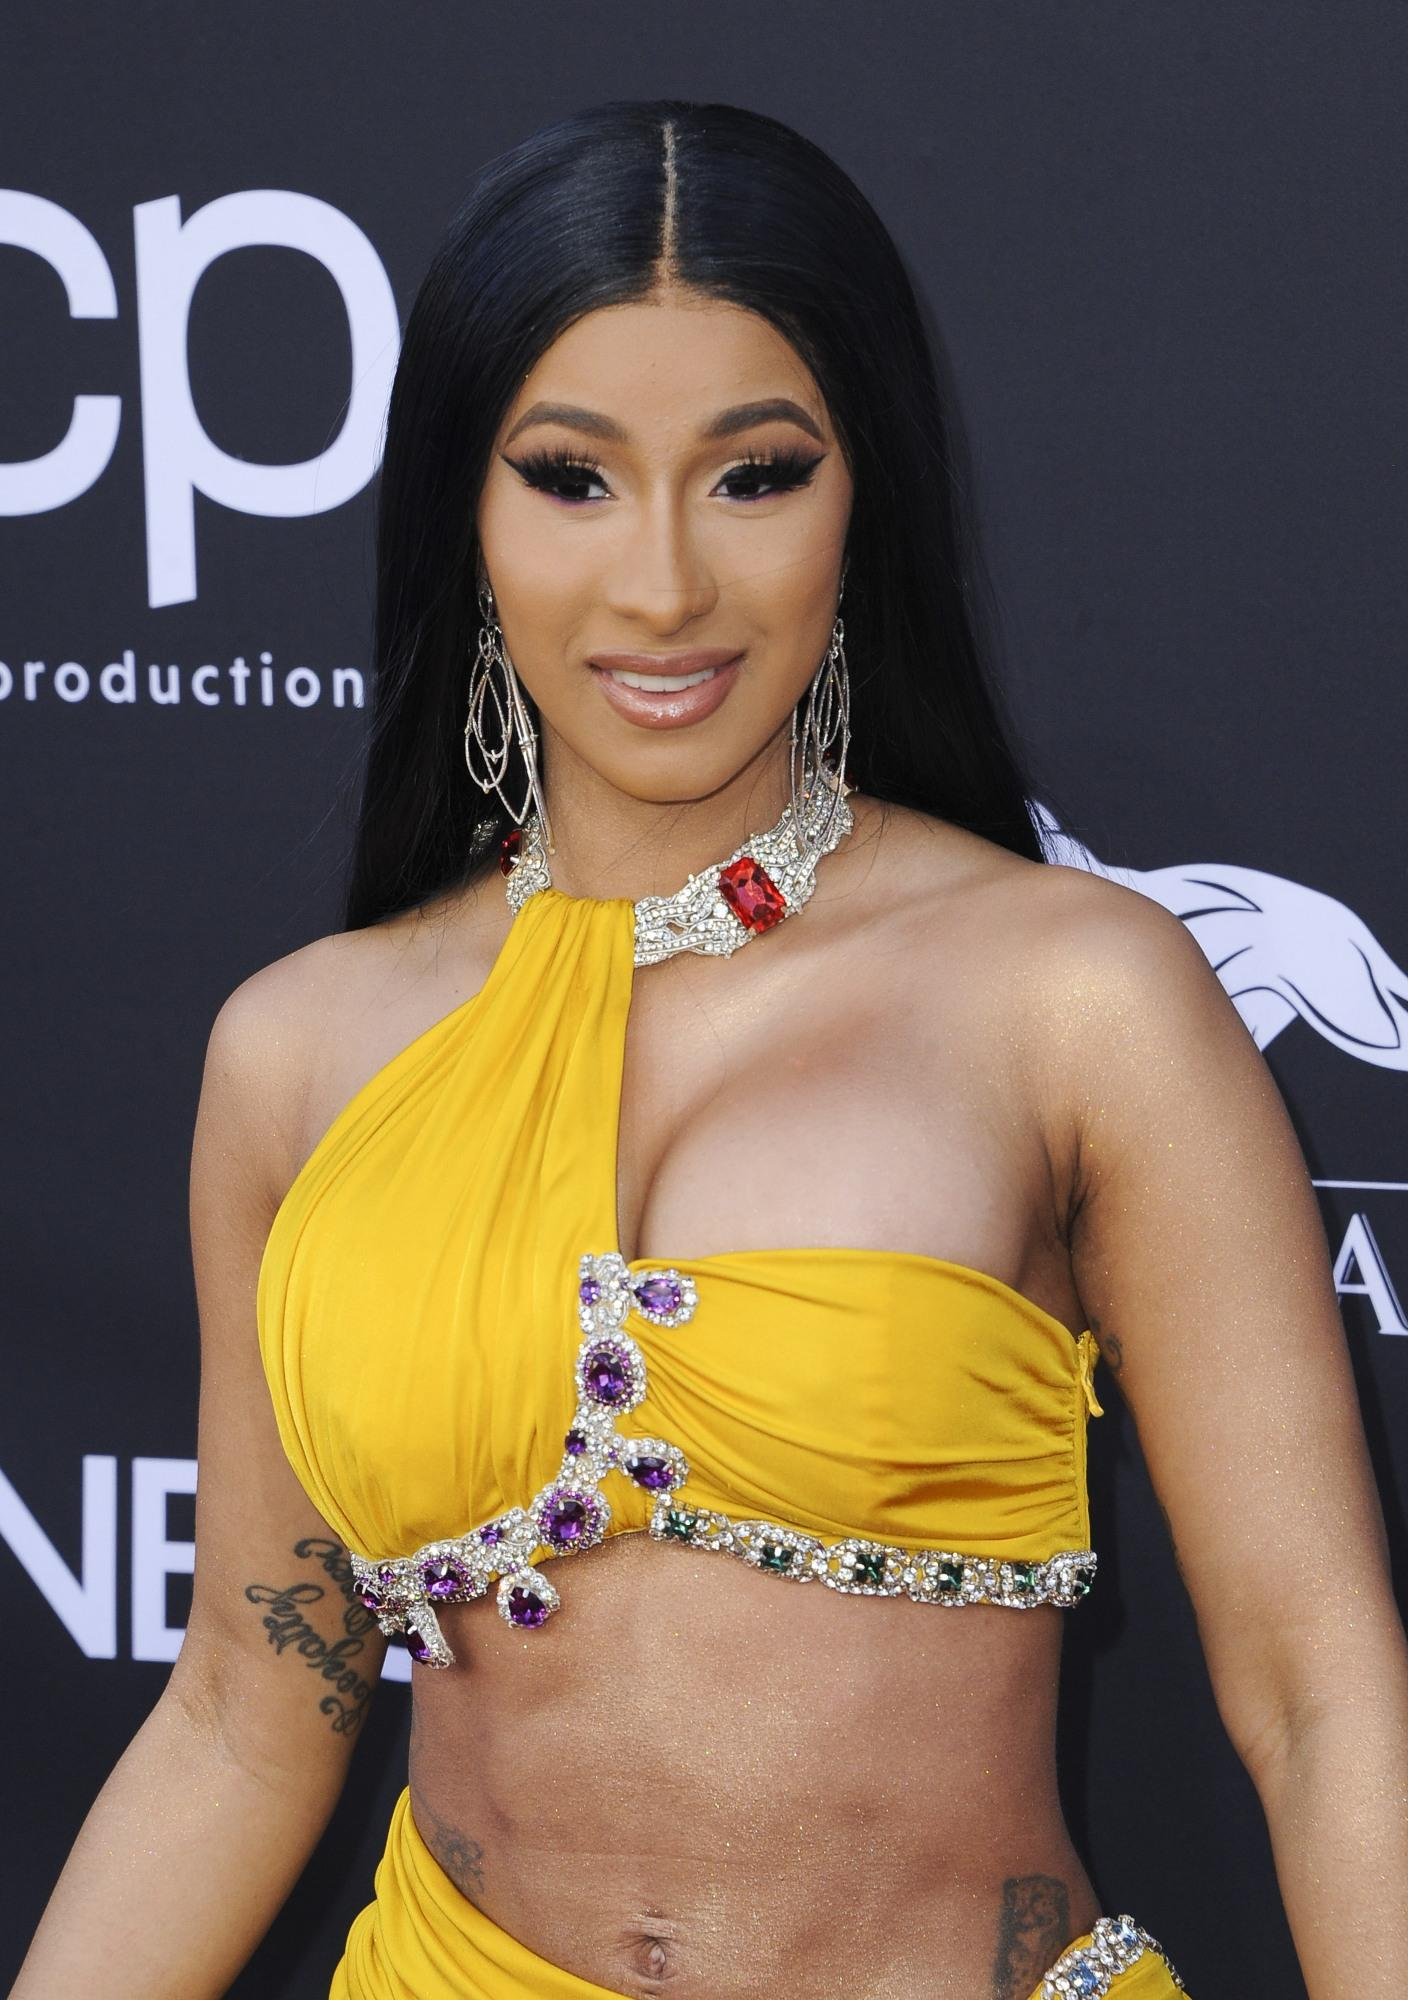 Billboard Awards 2019: Cardi B monopolizza la parata di stelle e bellezze sul red carpet